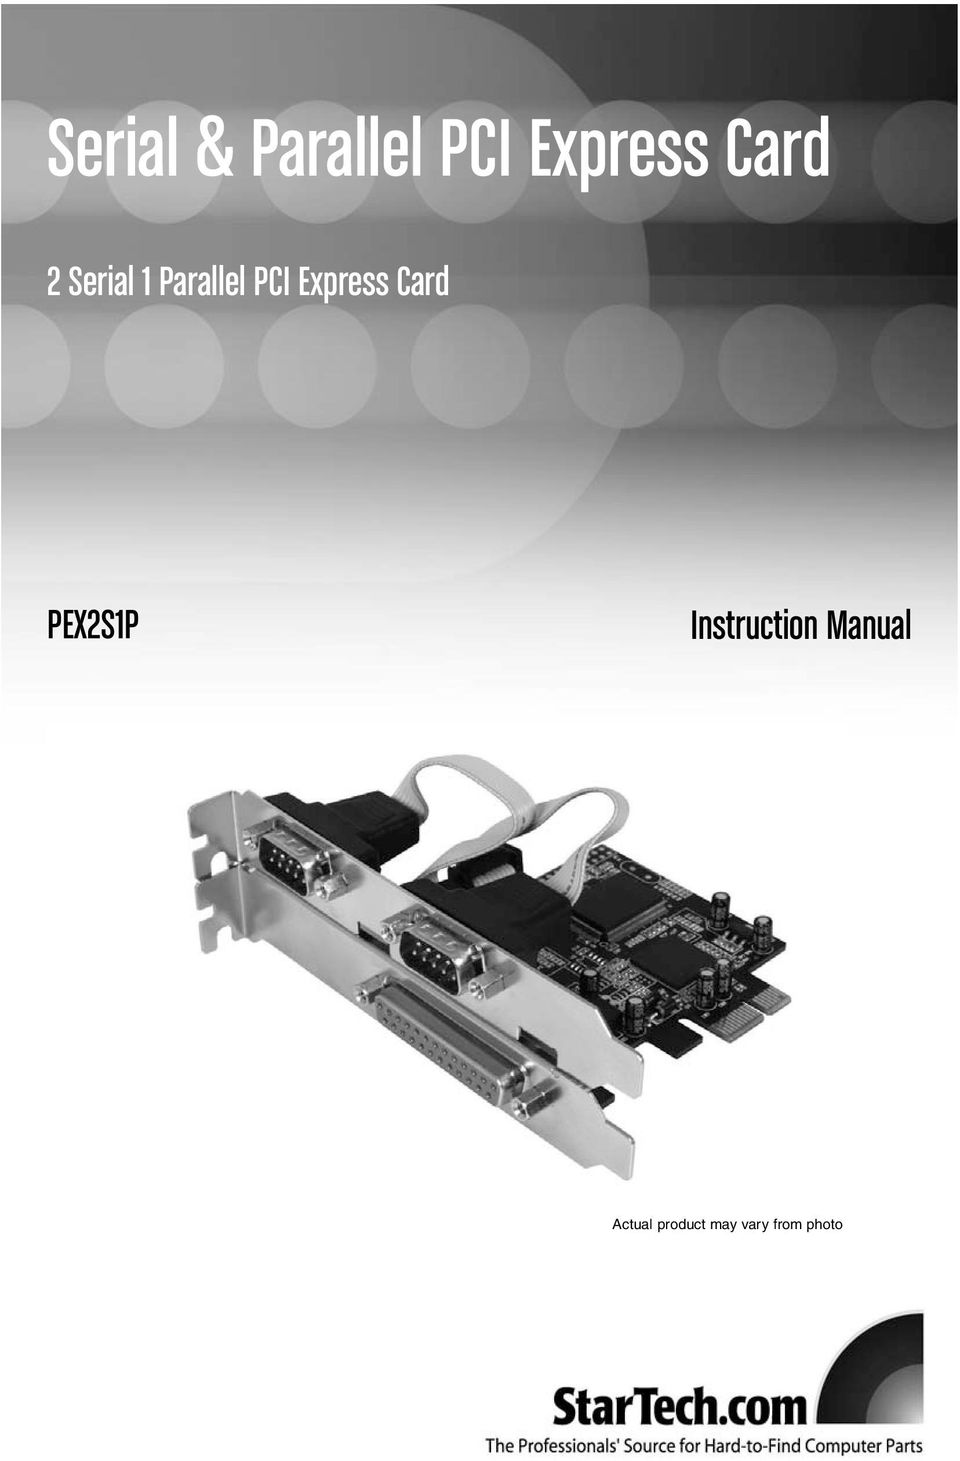 Parallel PCI Express Card